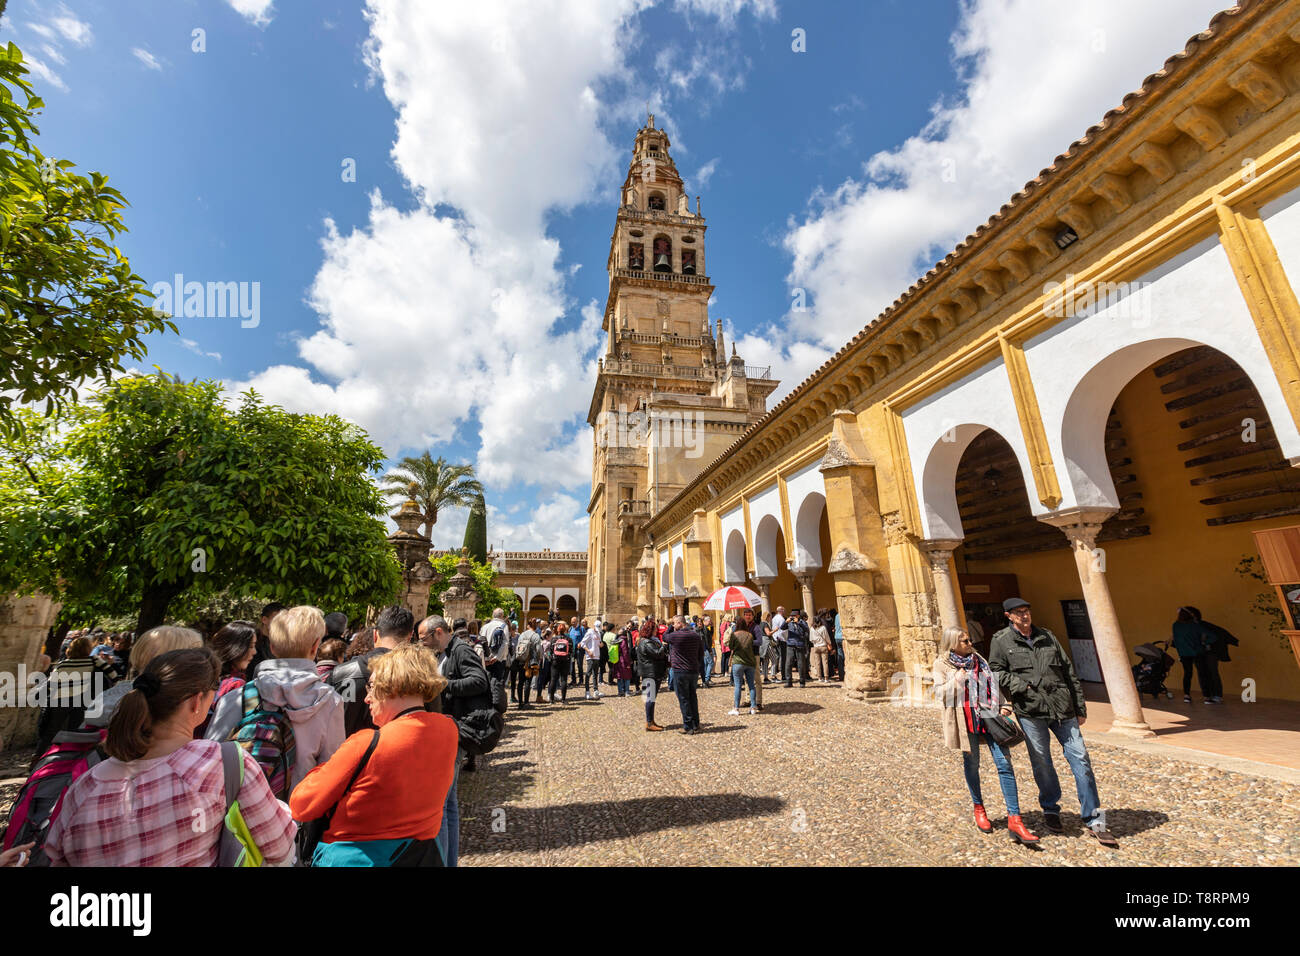 Tourist queueing for tickets. Bell tower  and Court of Oranges in Mosque–Cathedral of Córdoba, Mezquita Cordoba, Andalusia, Spain Stock Photo